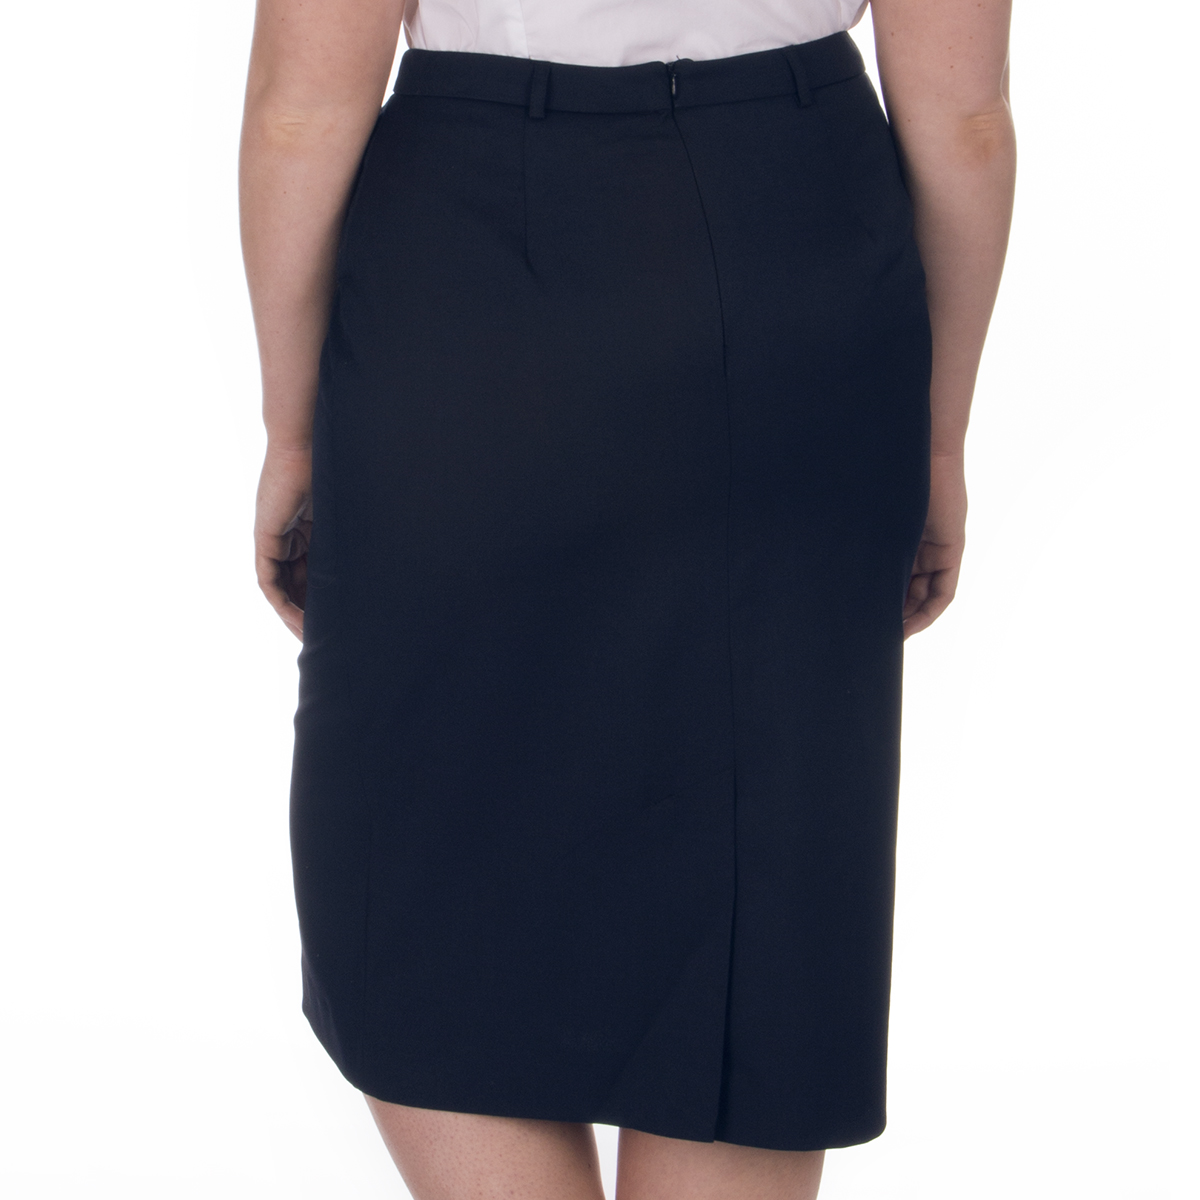 NEW 2239 stretch skirt office day black size 10-22